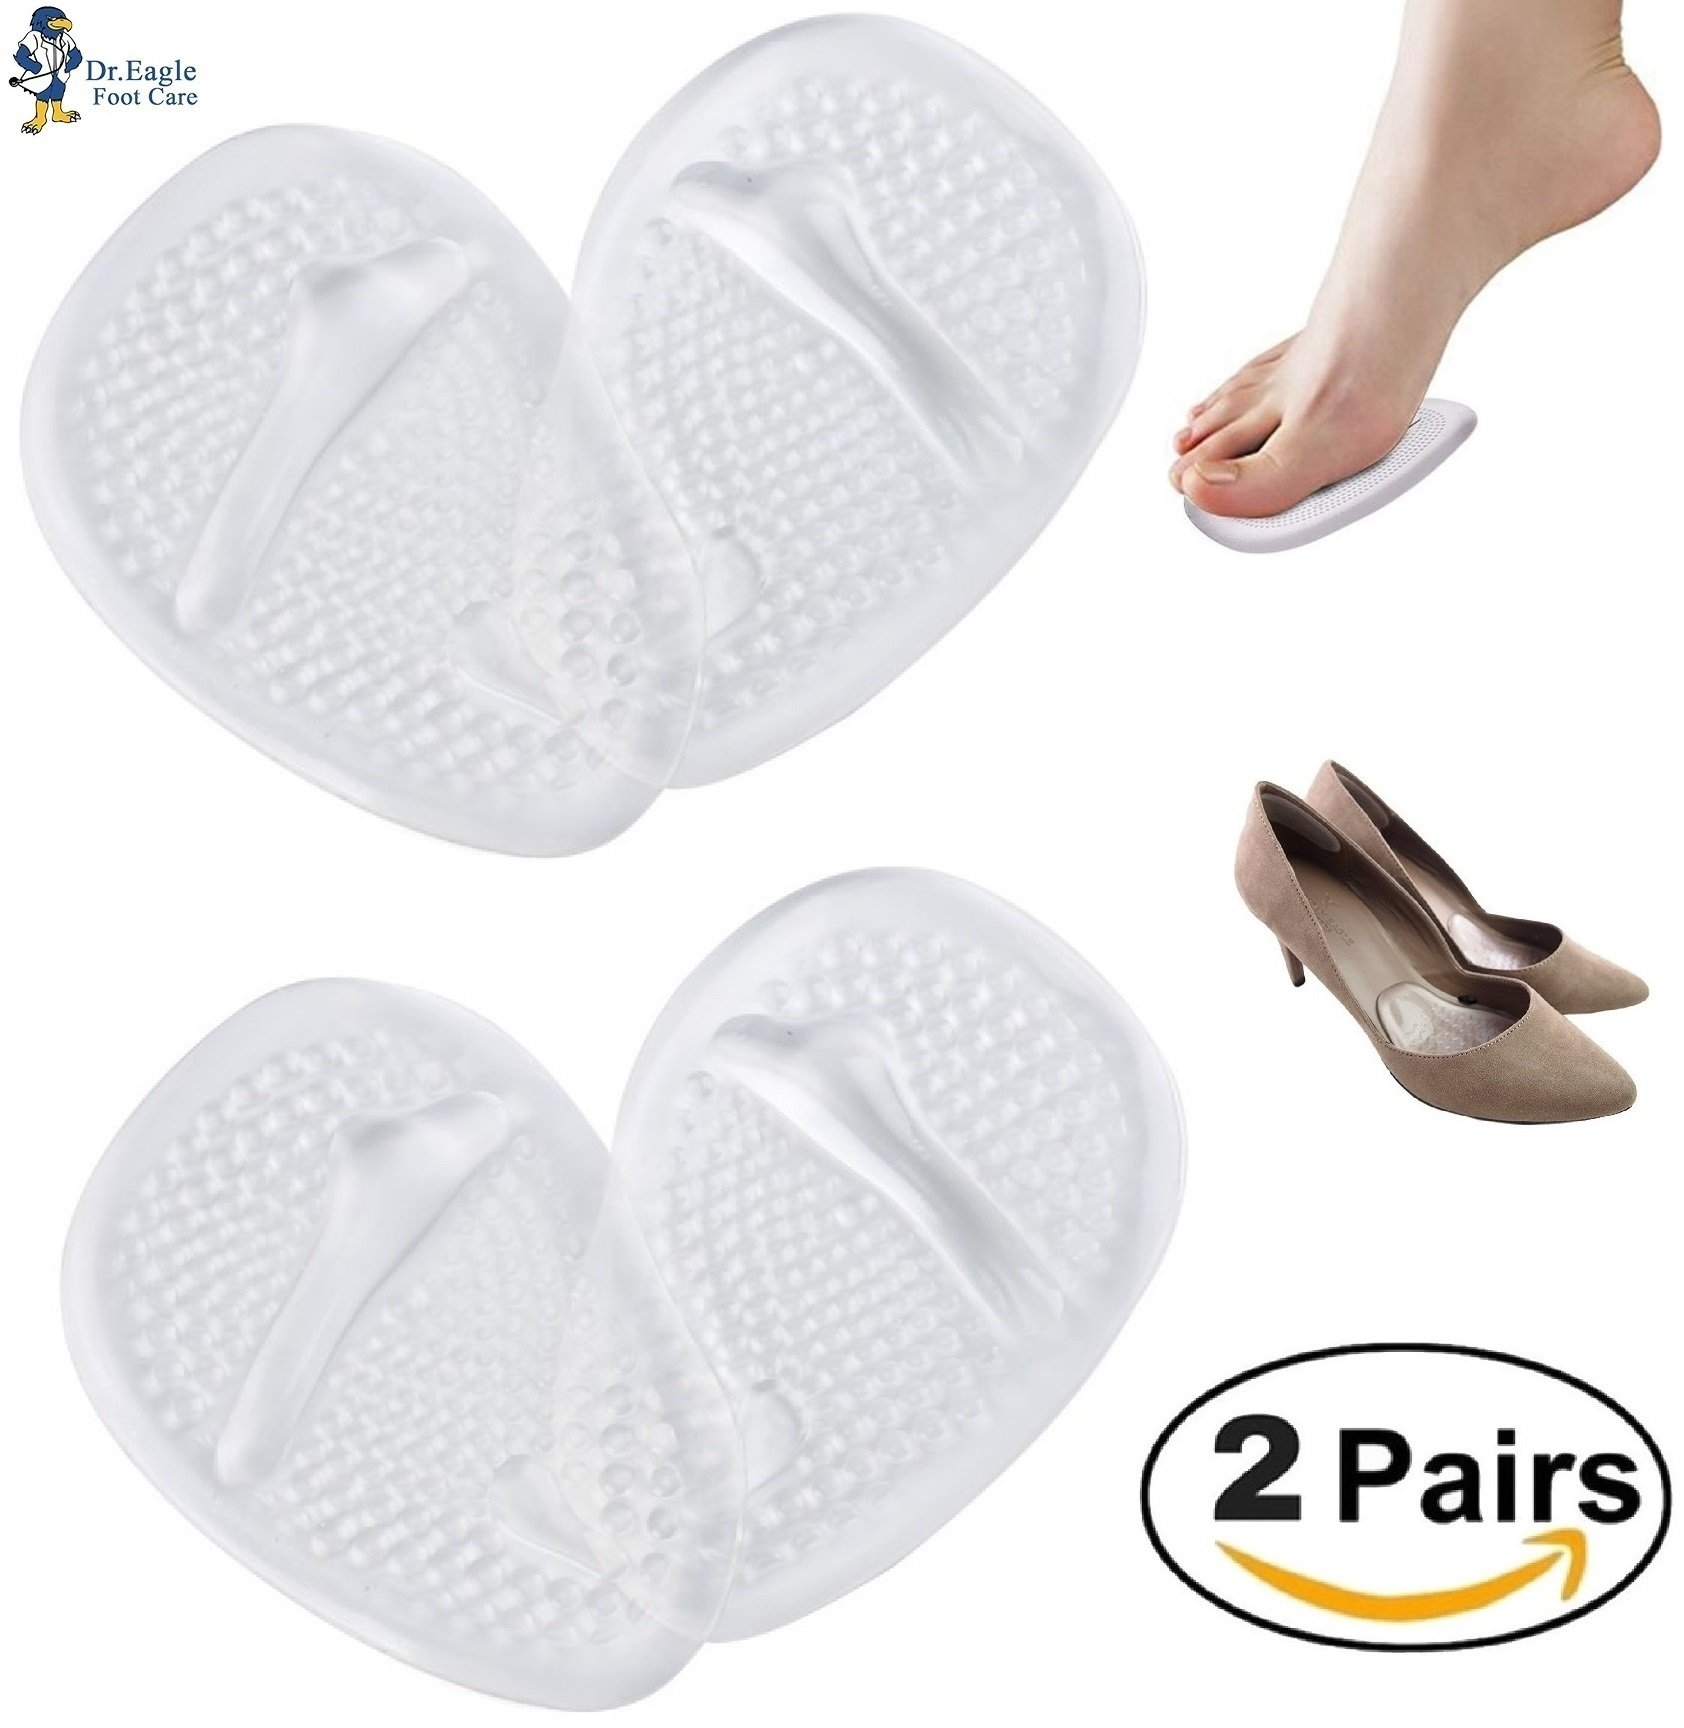 d9f6596c2faf83 Get Quotations · Medical Gel Forefoot Ball of Foot Cushions Shoe Insoles  Metatarsal Pads women shoe inserts for foot